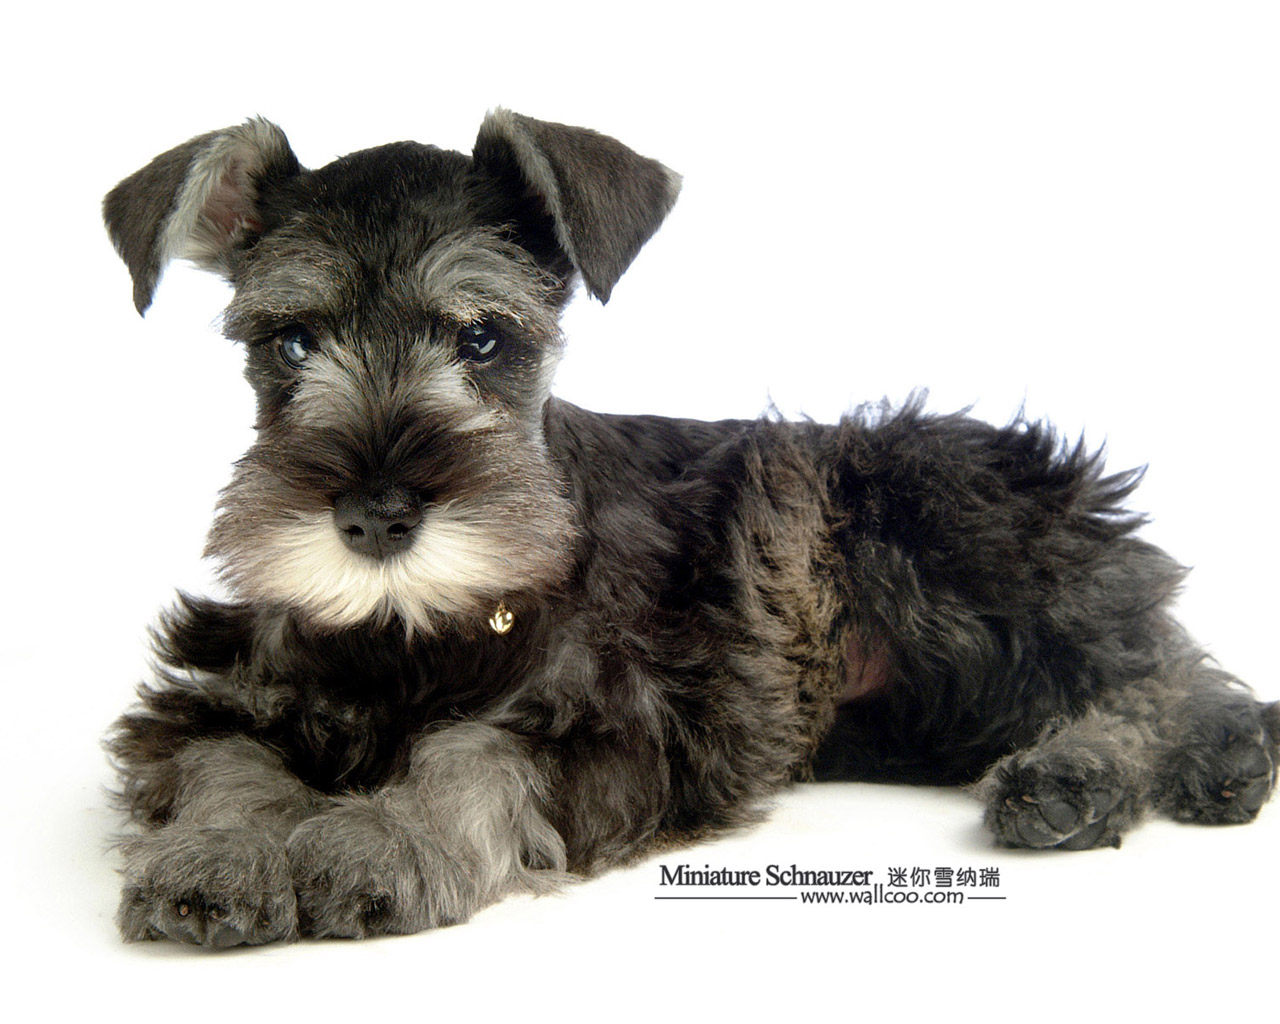 ... Pet Dogs - Miniature Schnauzer Puppy Photos 1280*1024 NO.34 Wallpaper